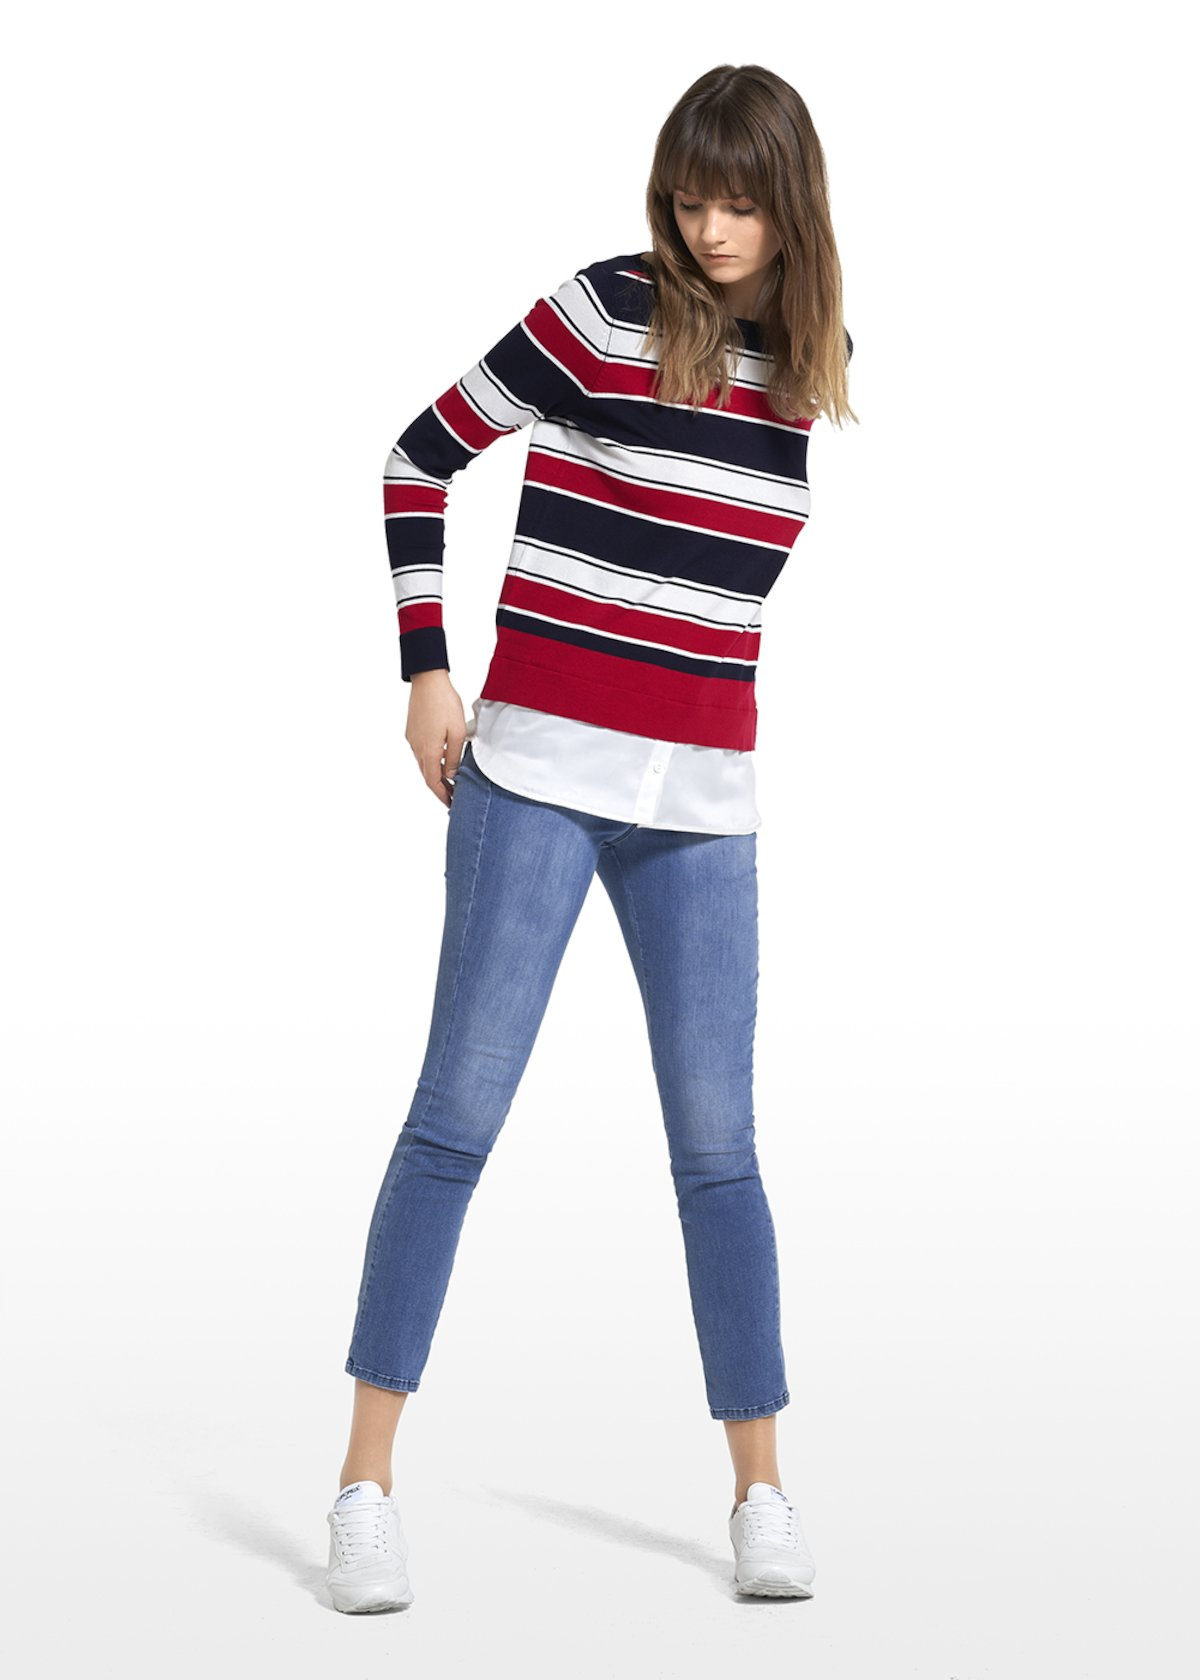 Maddy jersey with tricolor stripes pattern - White / Blue Stripes - Woman - Category image